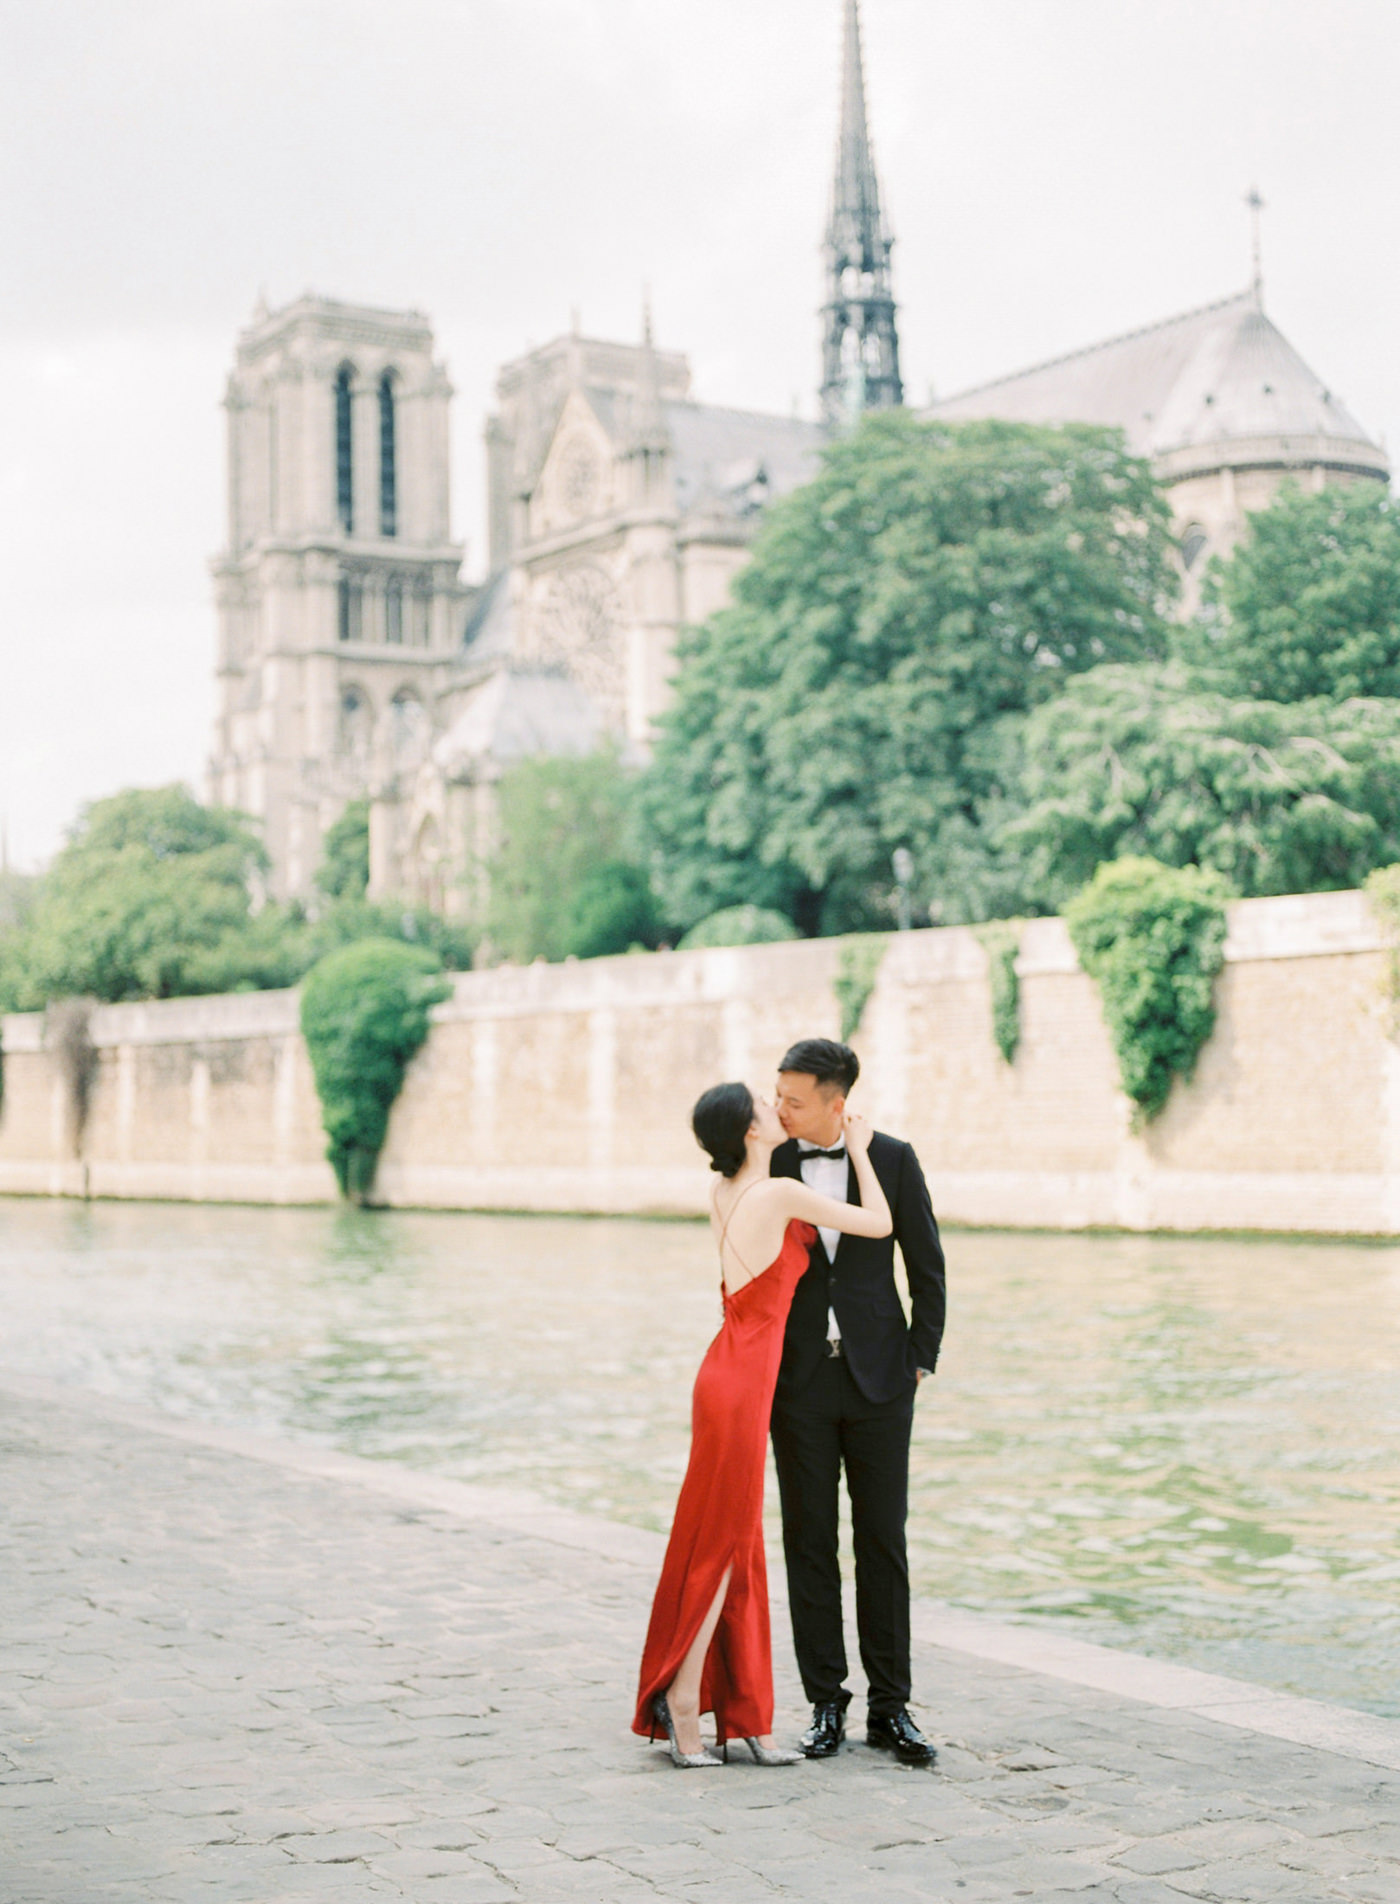 Yuan & Henry Paris Prewedding by CHYMO & MORE Photography (http: